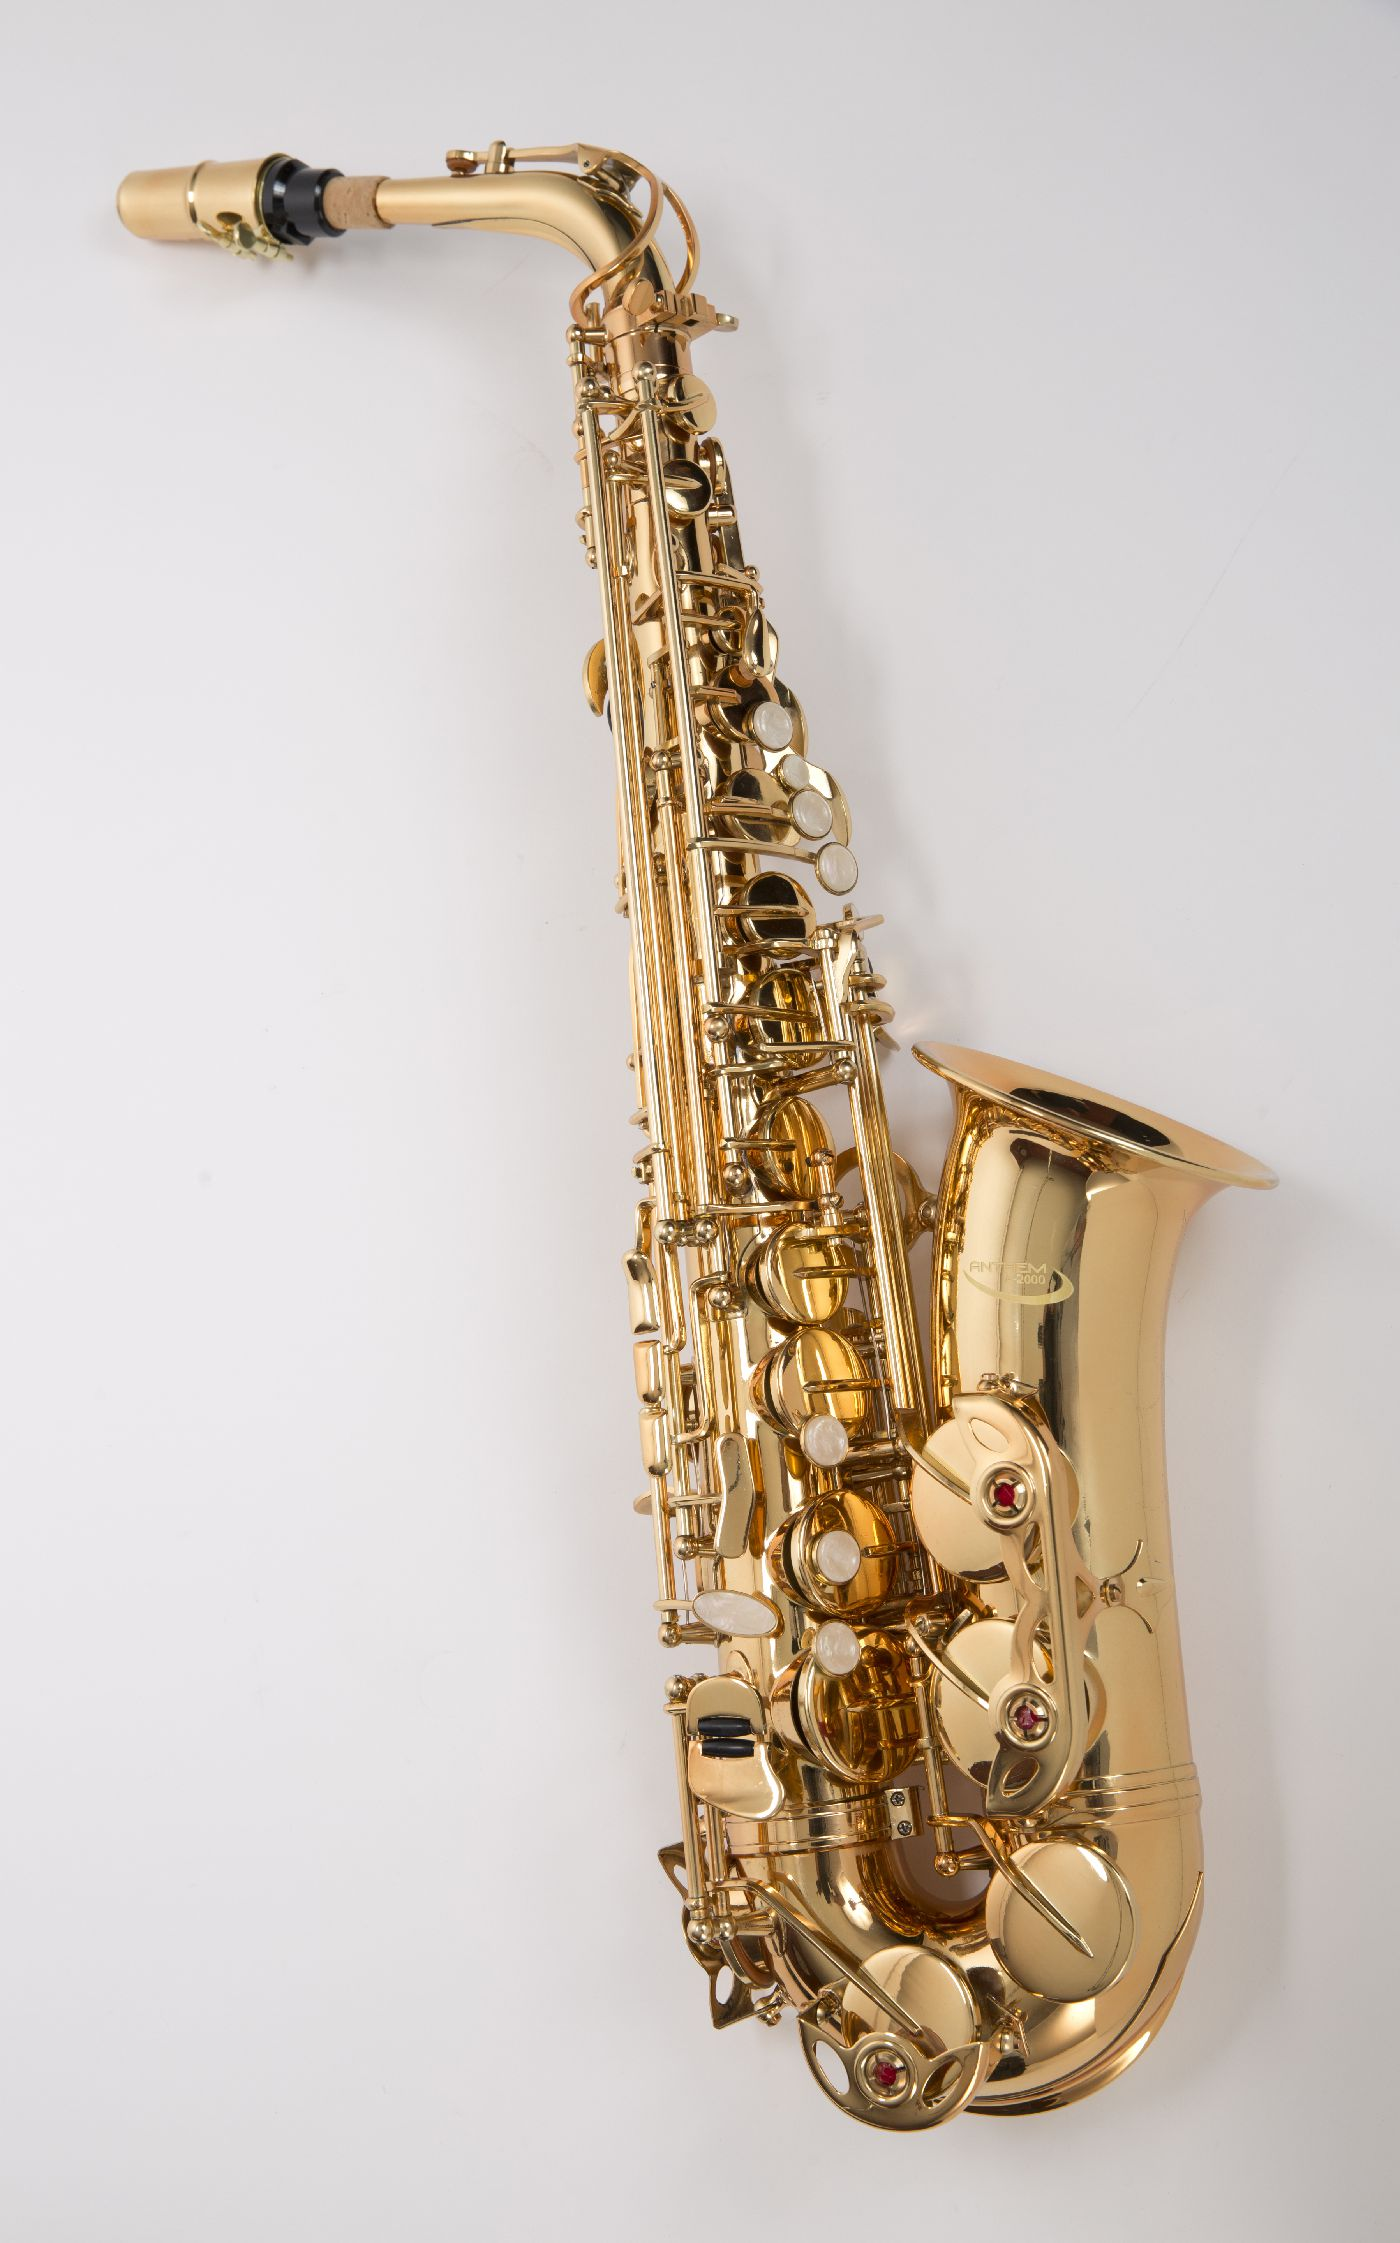 ANTHEM A-2000 ALTO AND TENOR SAXOPHONES